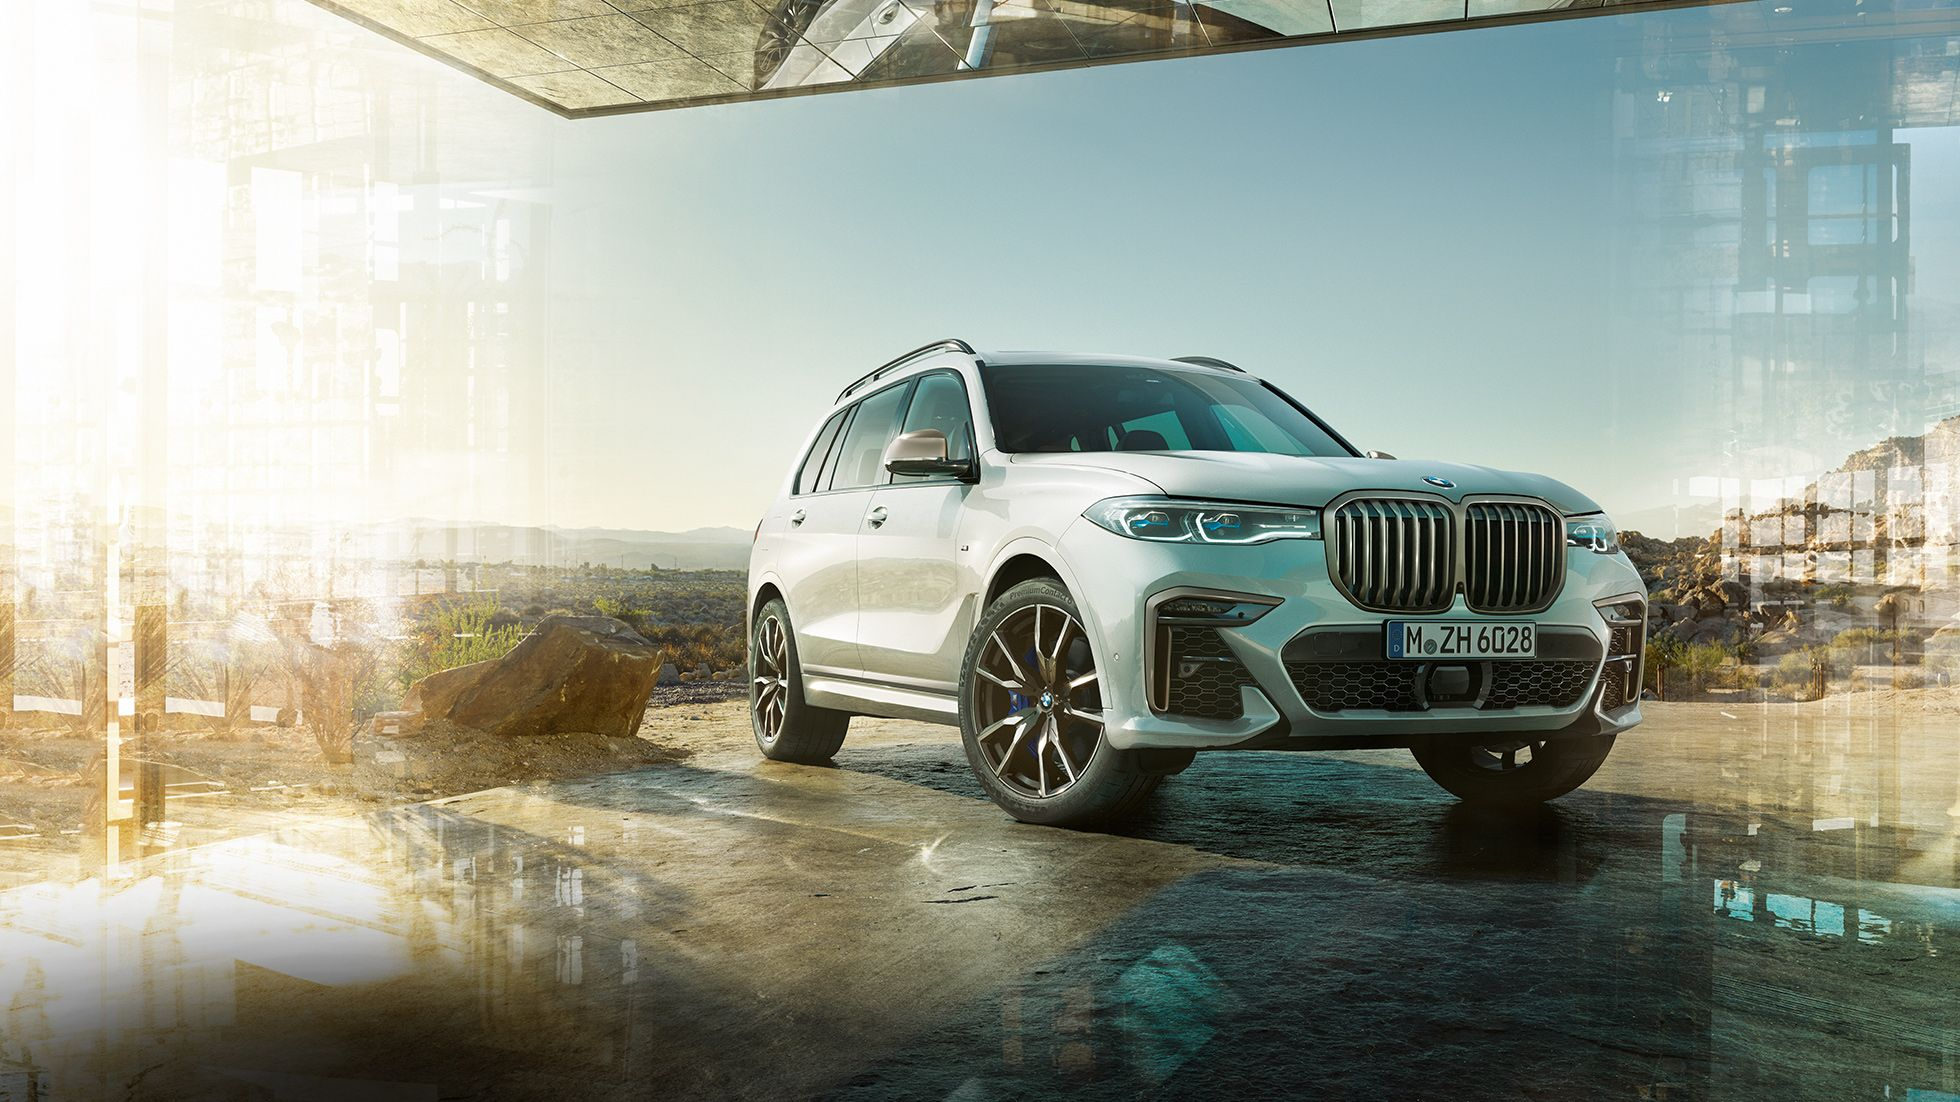 2020 Bmw X5 And X7 M50i Details And Specs On New Performance Variants